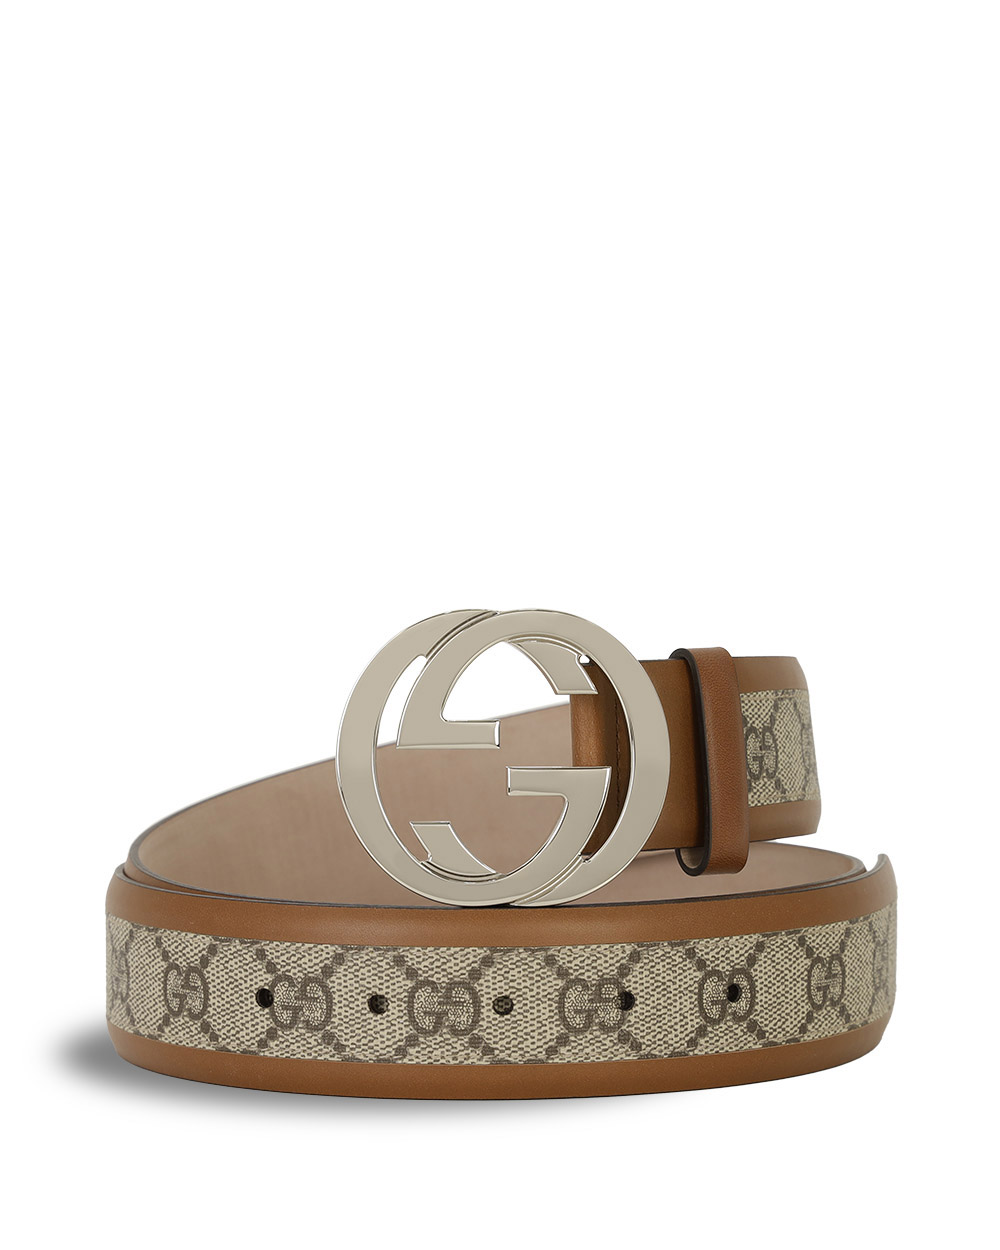 Double G Buckle PVC Belt